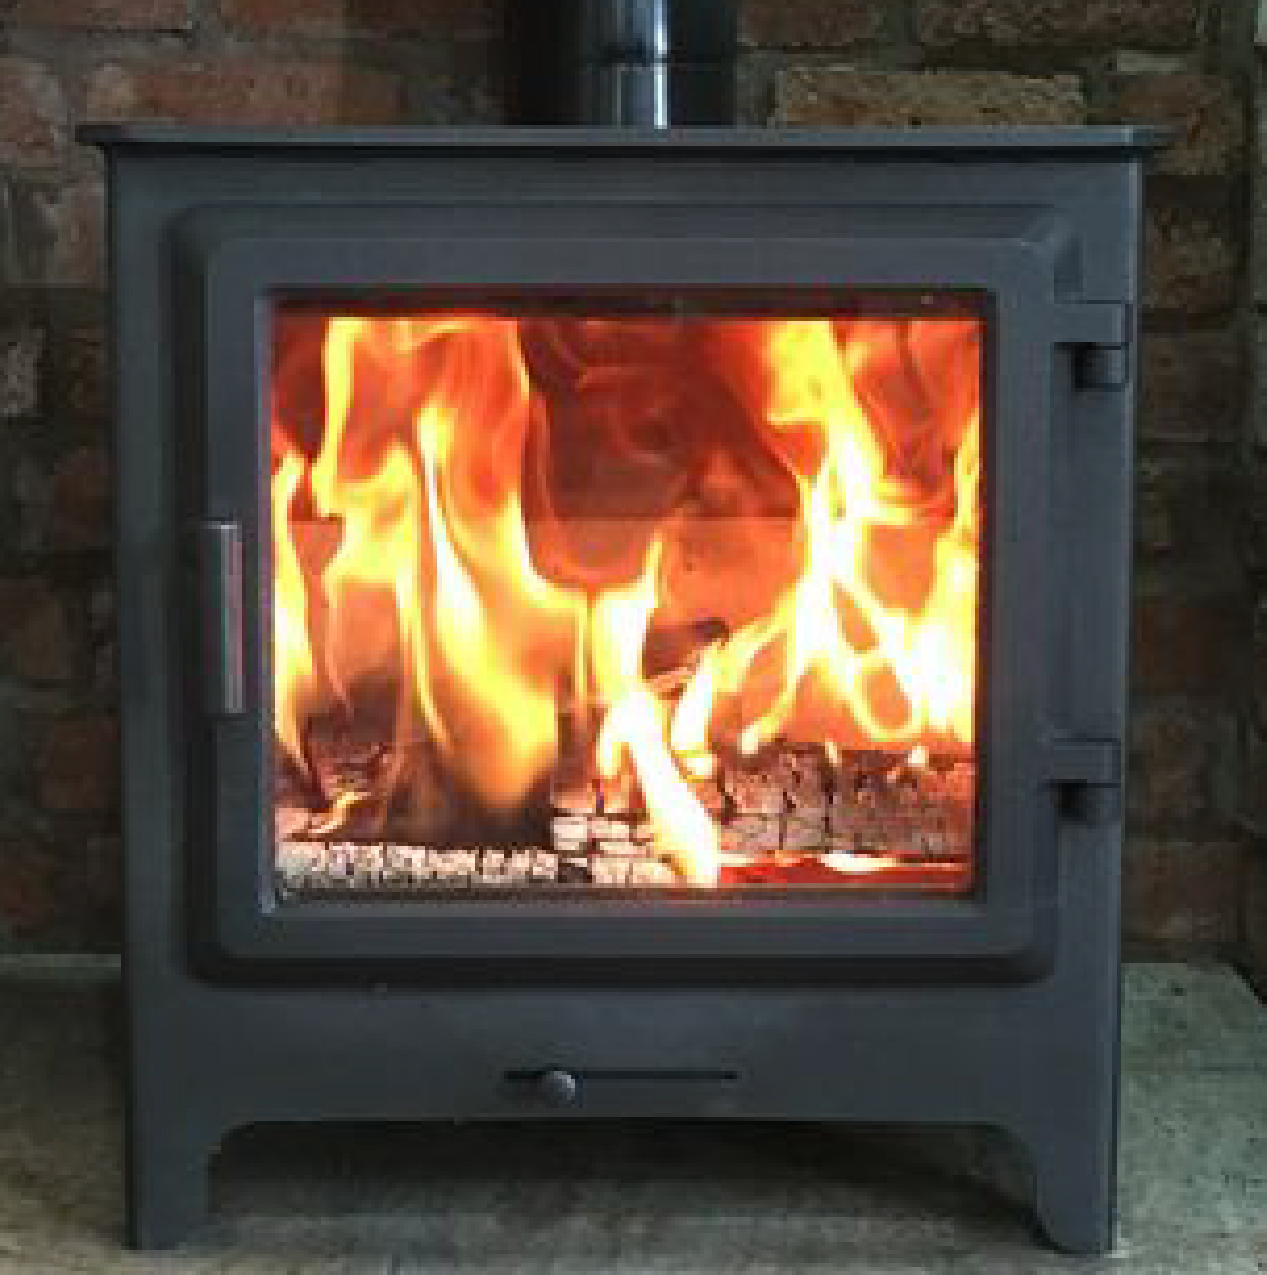 MERLIN SLIMLINE PLUS WOOD BURNING STOVES